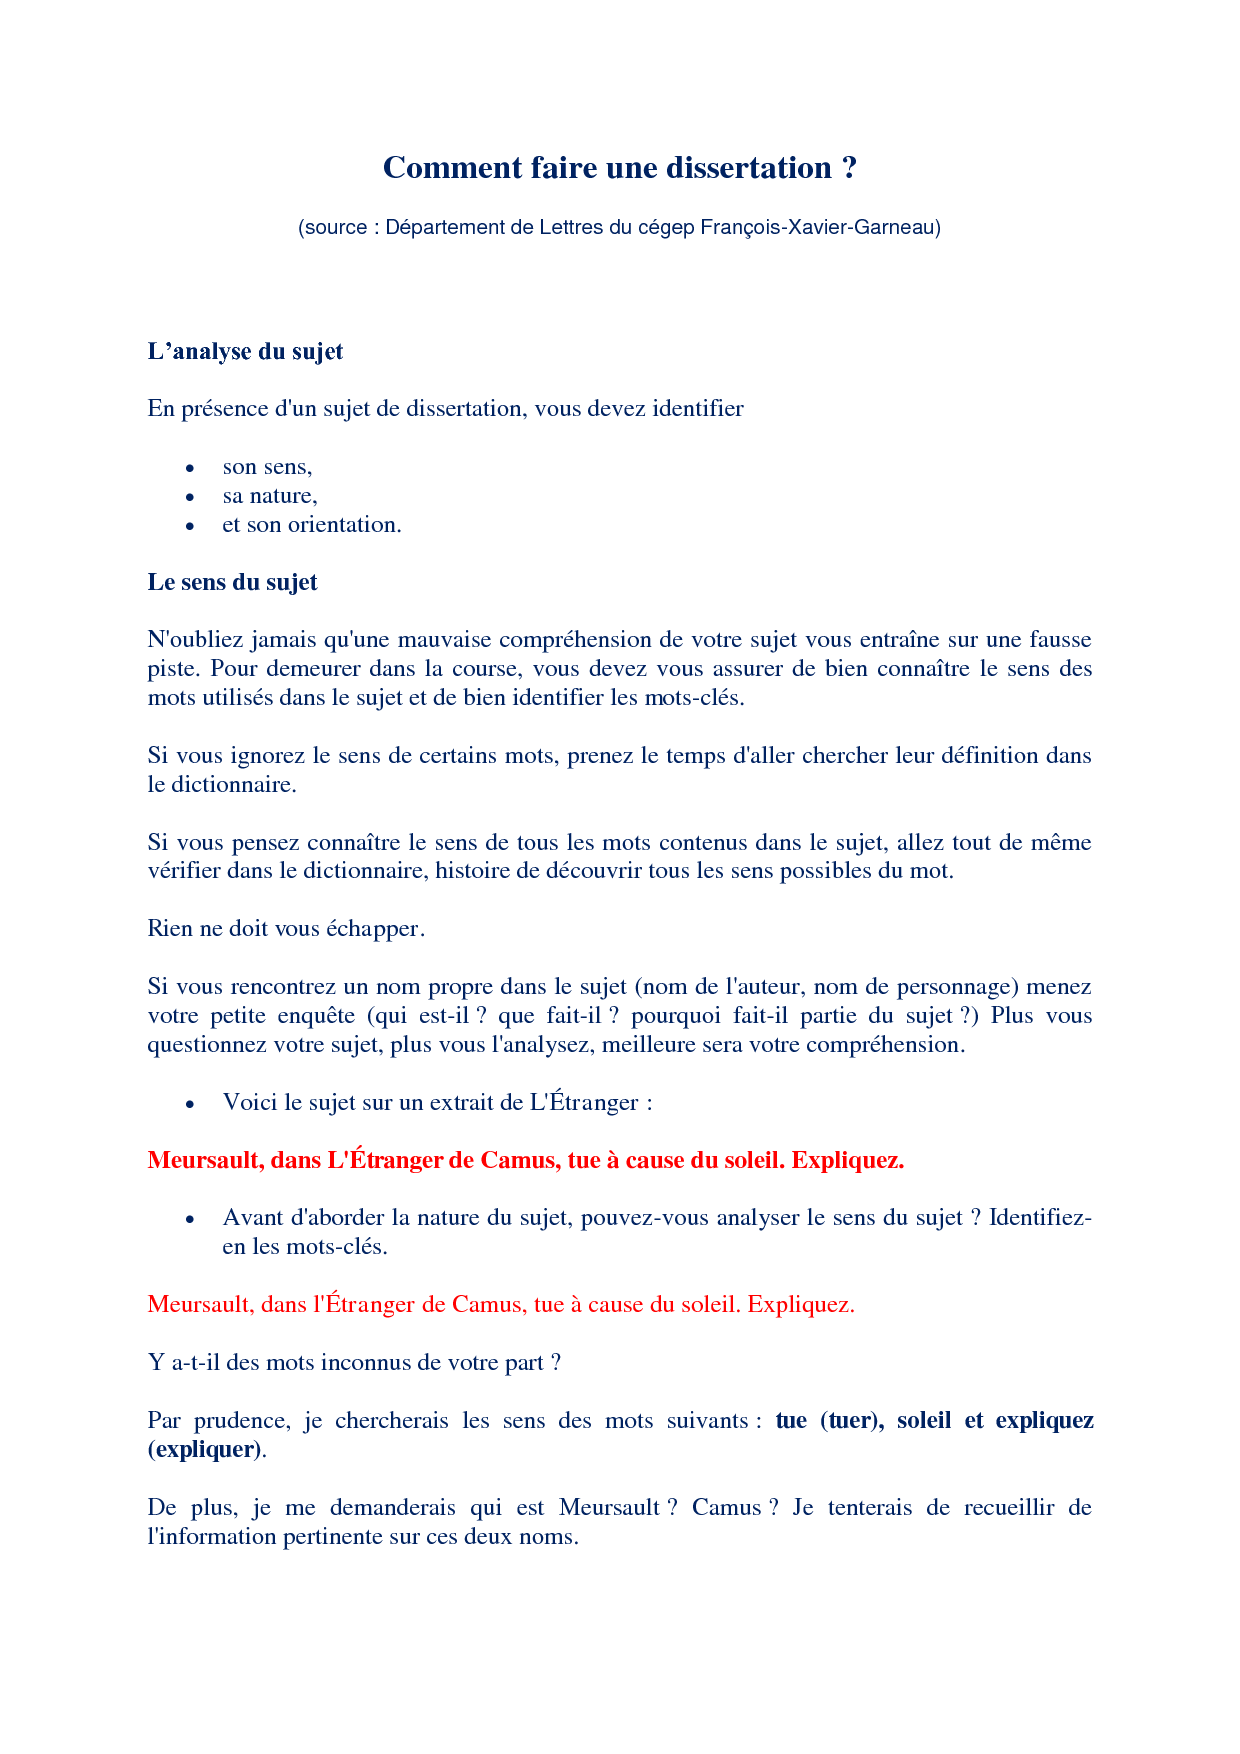 comment faire une bonne dissertation Writing public service announcements comment rediger une bonne dissertation do my homework online me how is homework helpful to students.